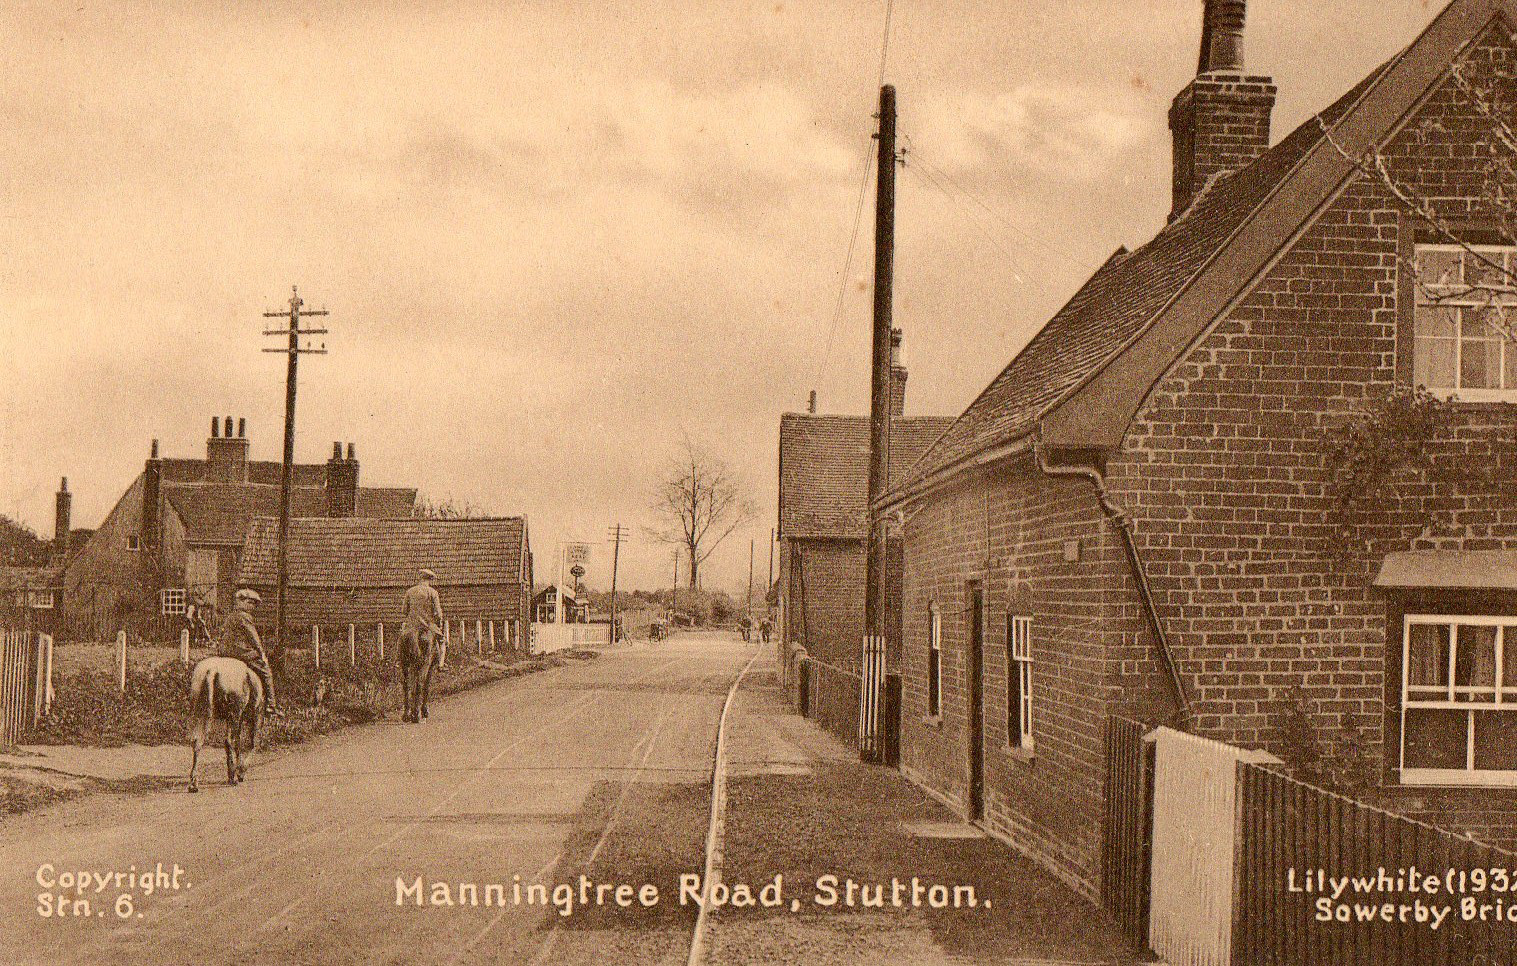 manningtree-road-cattsfield-is-now-on-le